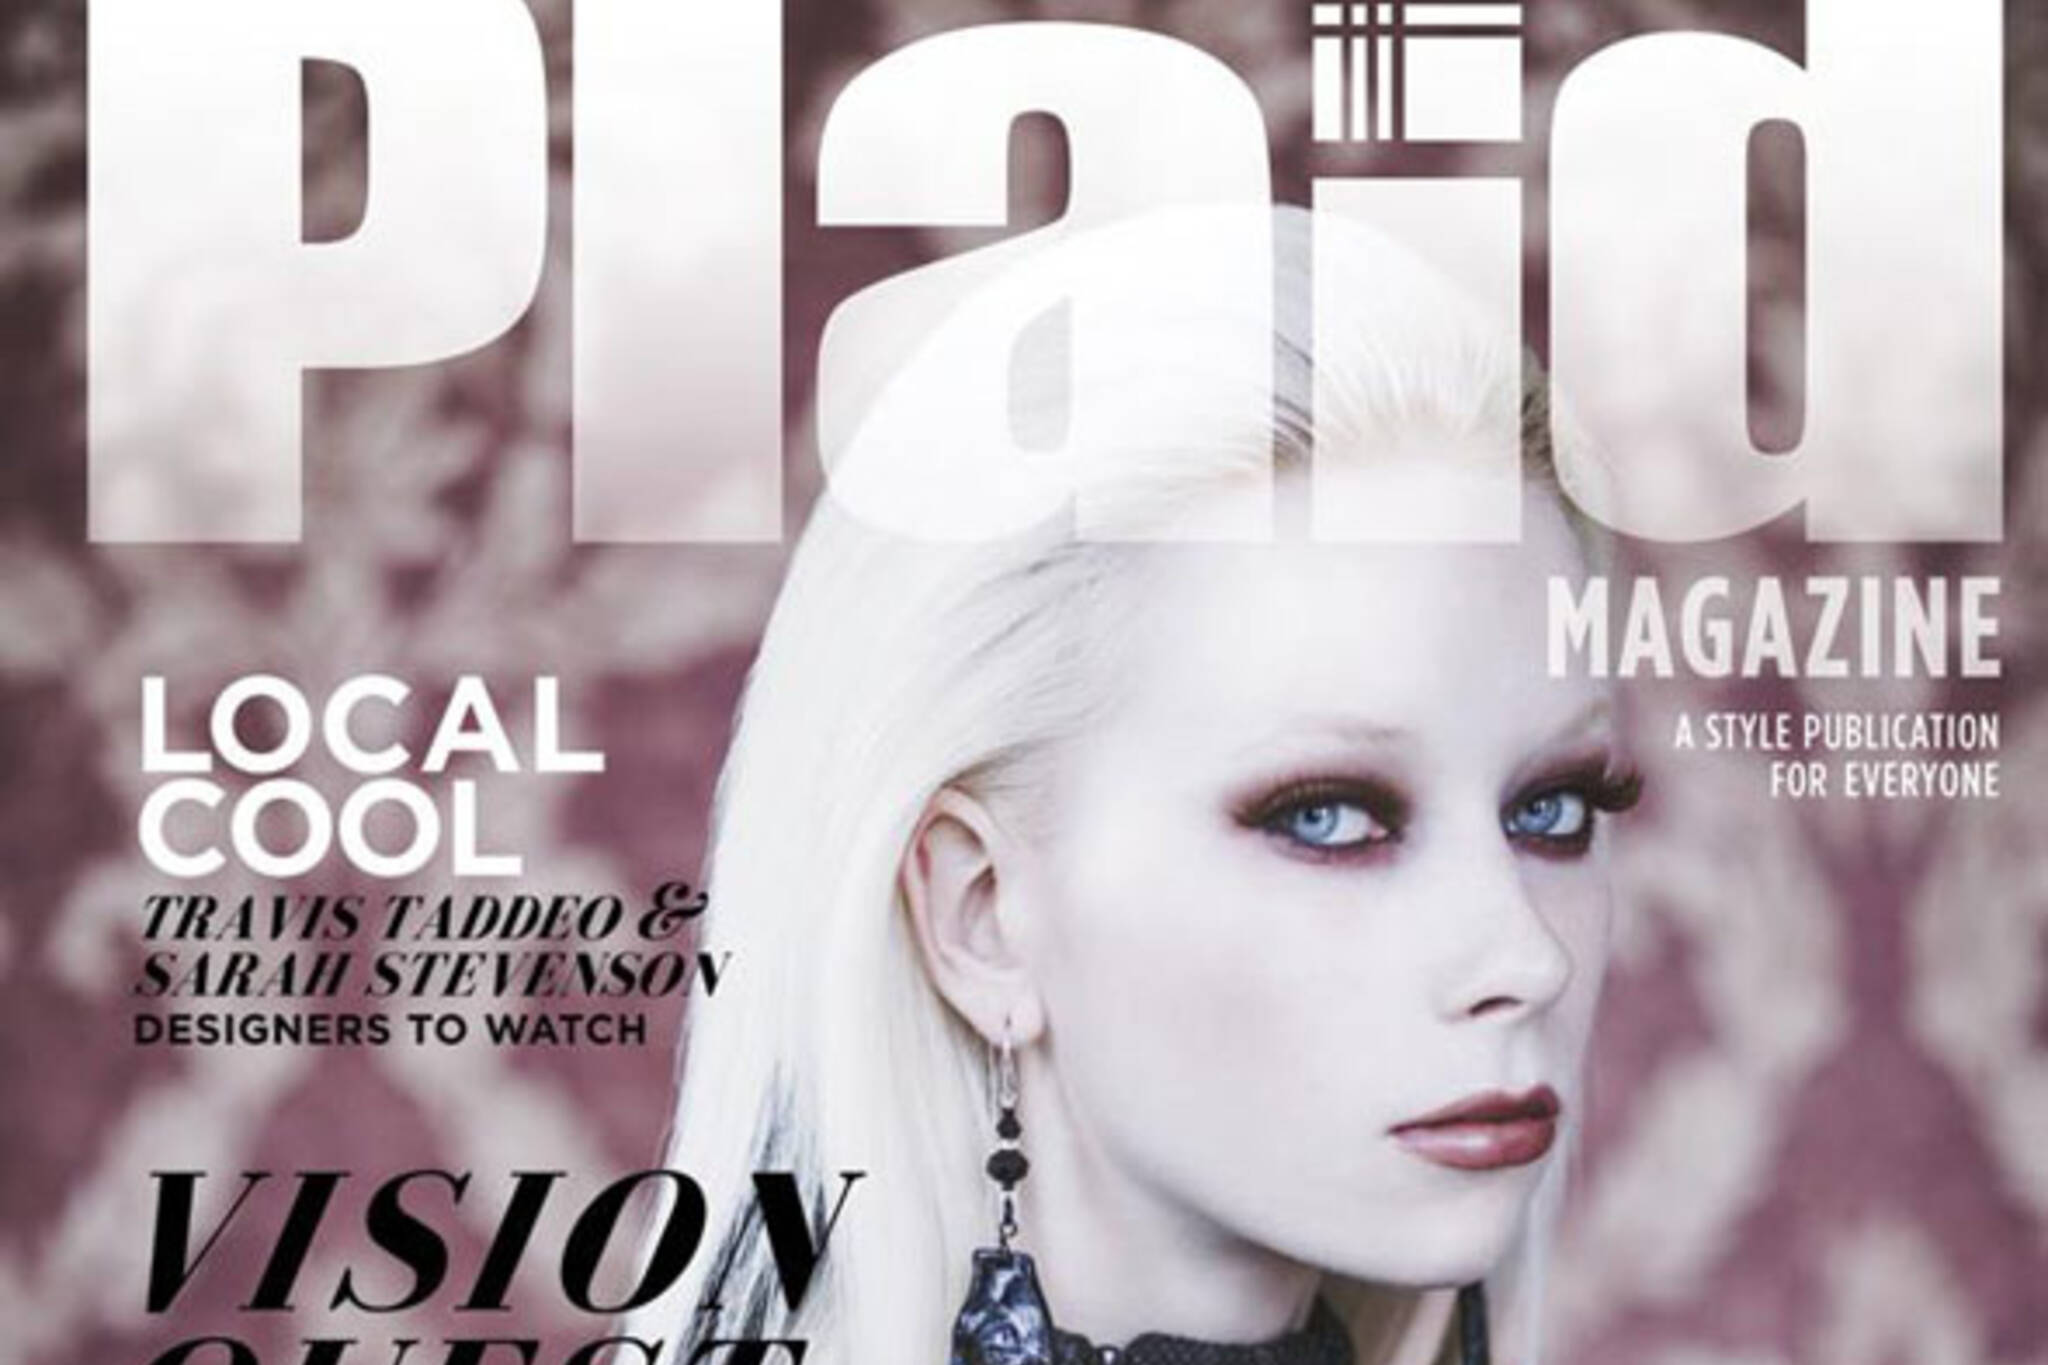 plaid magazine closing toronto